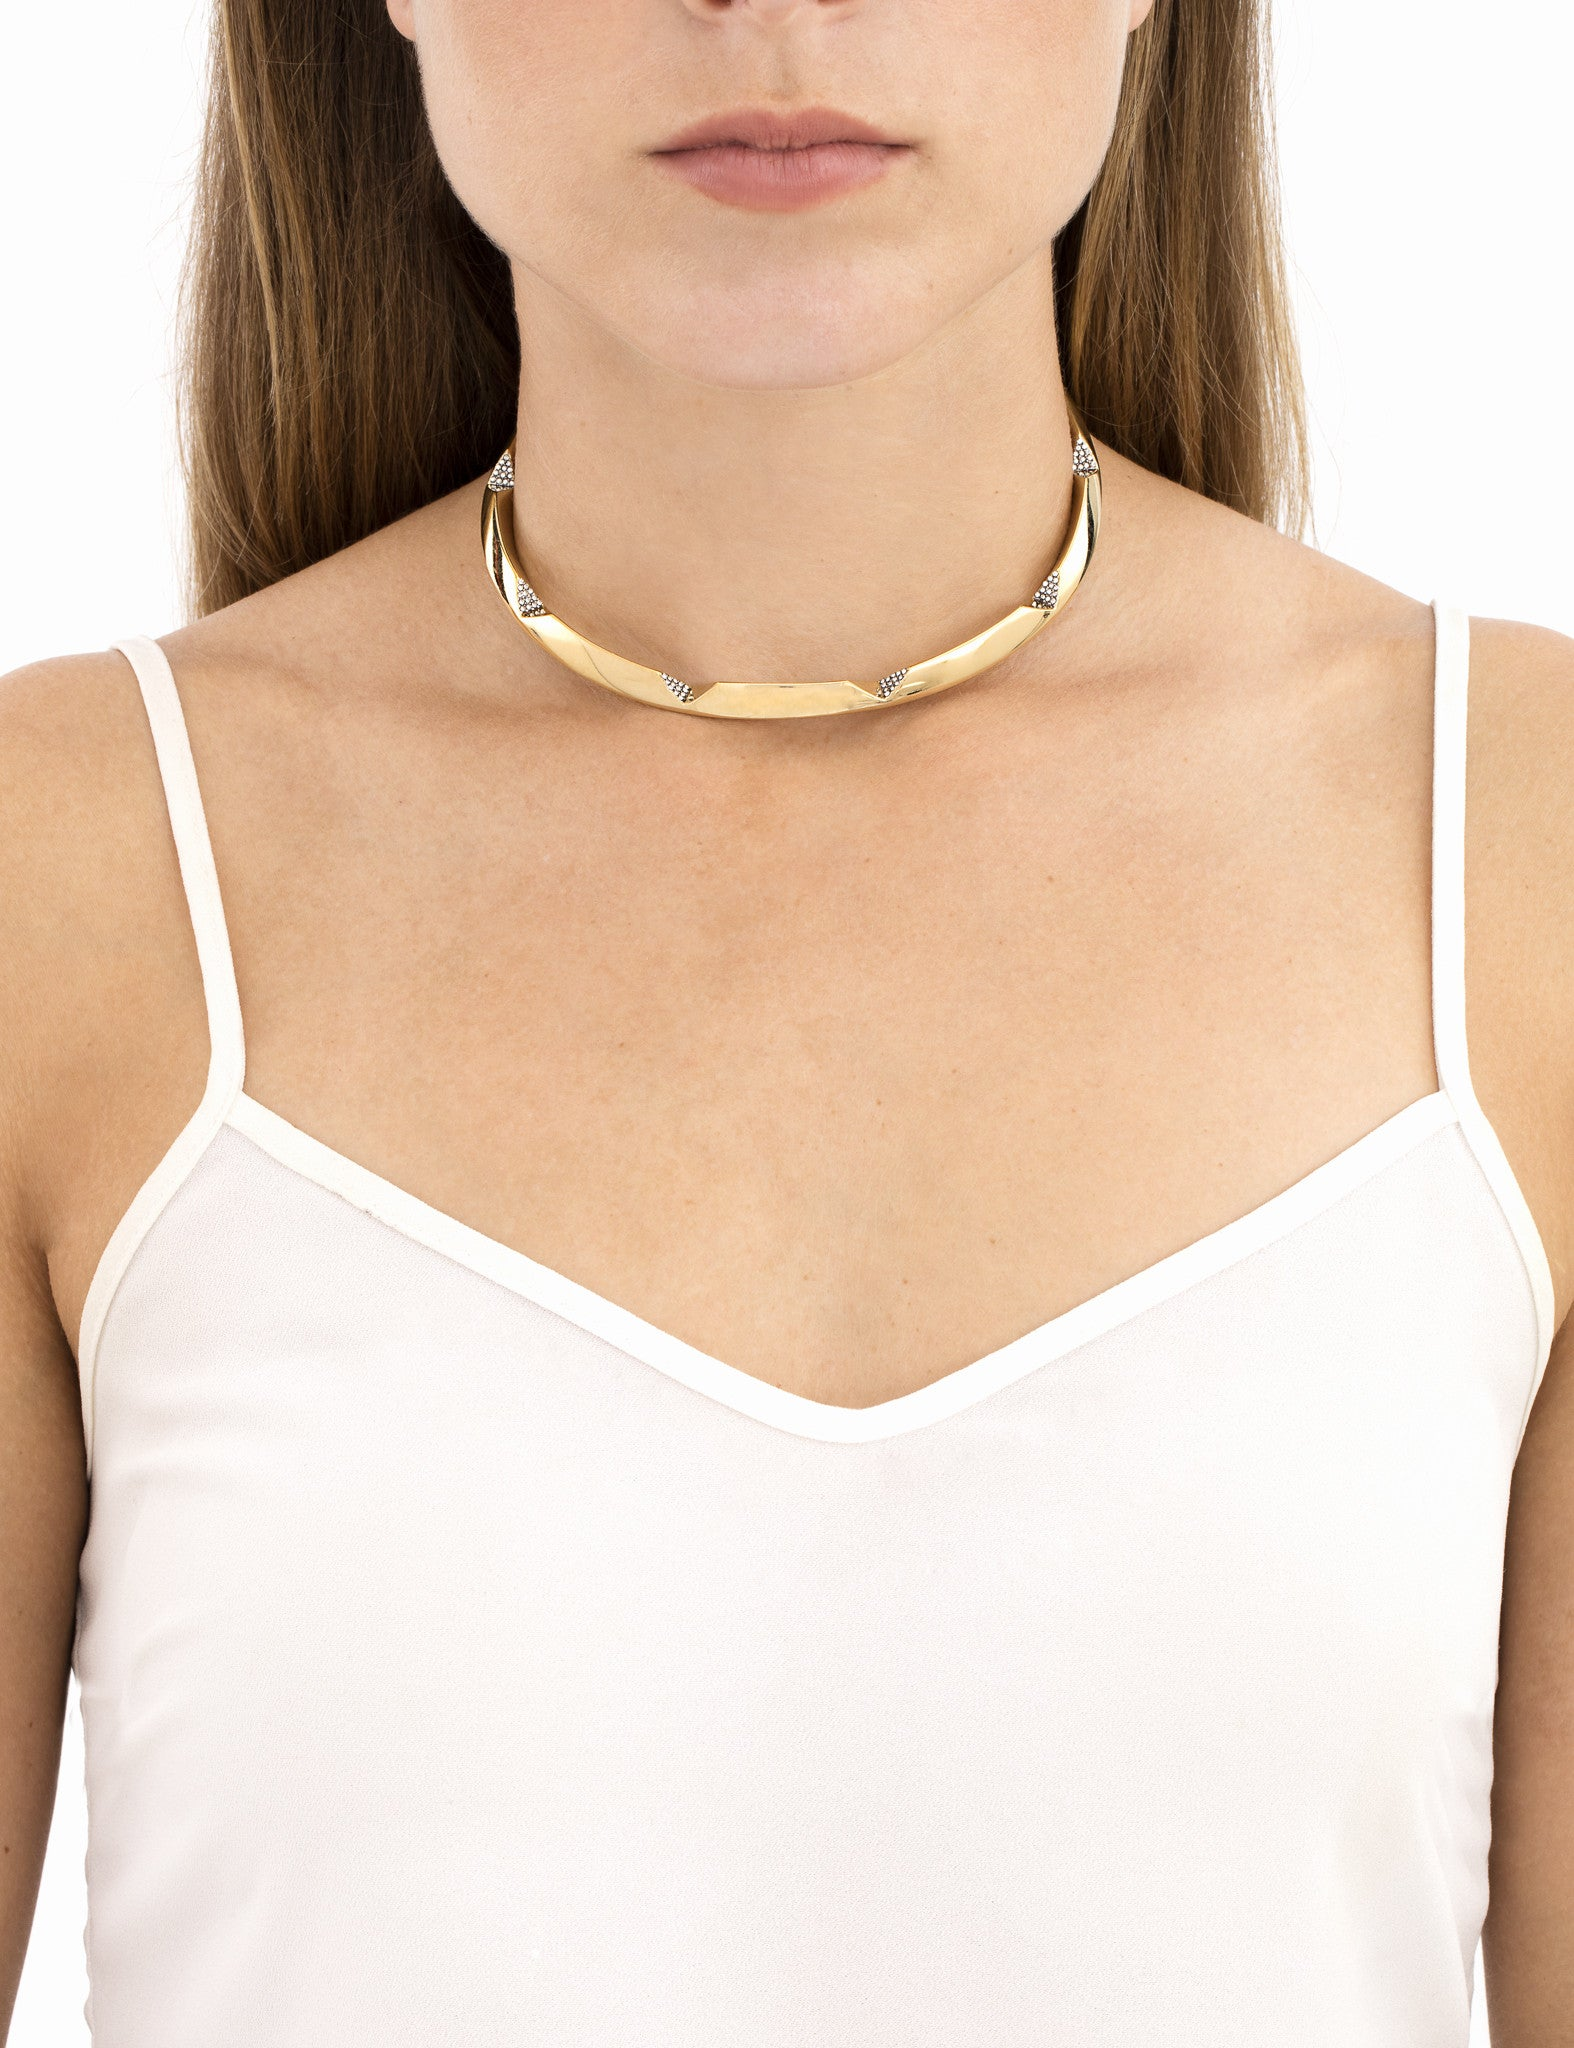 Cog Choker by Sarah Magid Jewelry